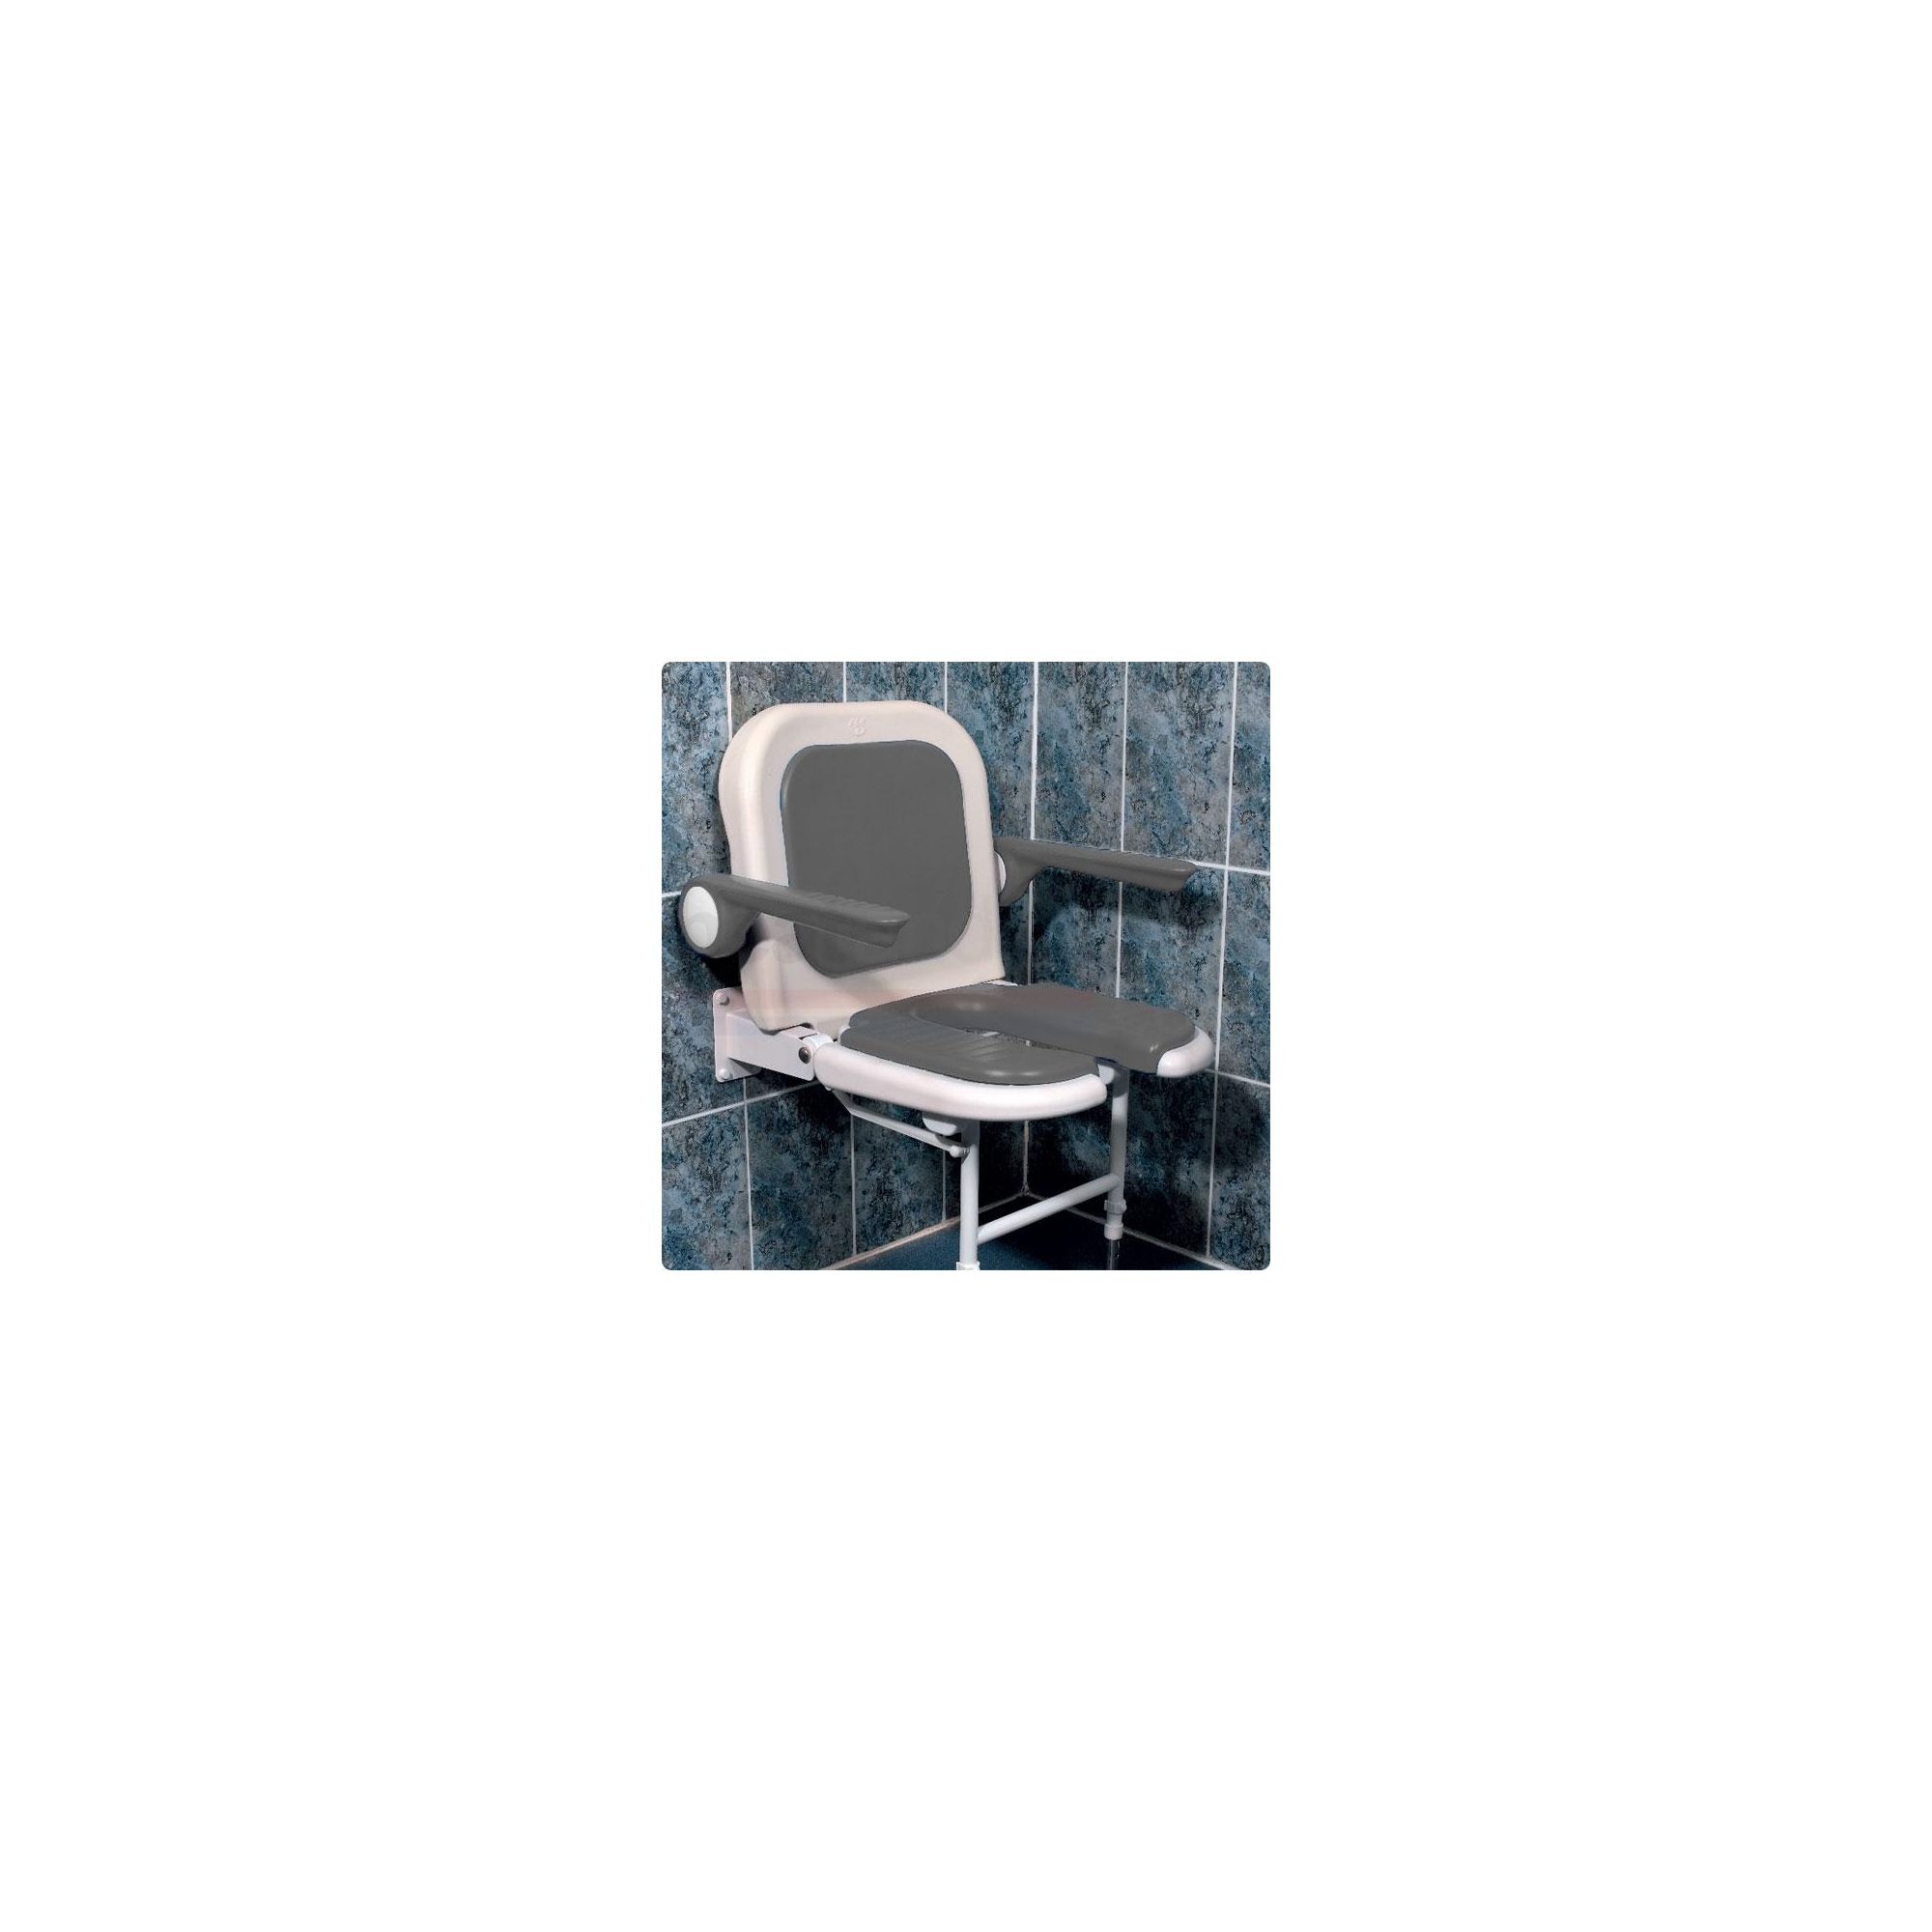 AKW 4000 Series Standard Fold Up Horseshoe Shower Seat Grey with Back and Grey Arms at Tesco Direct